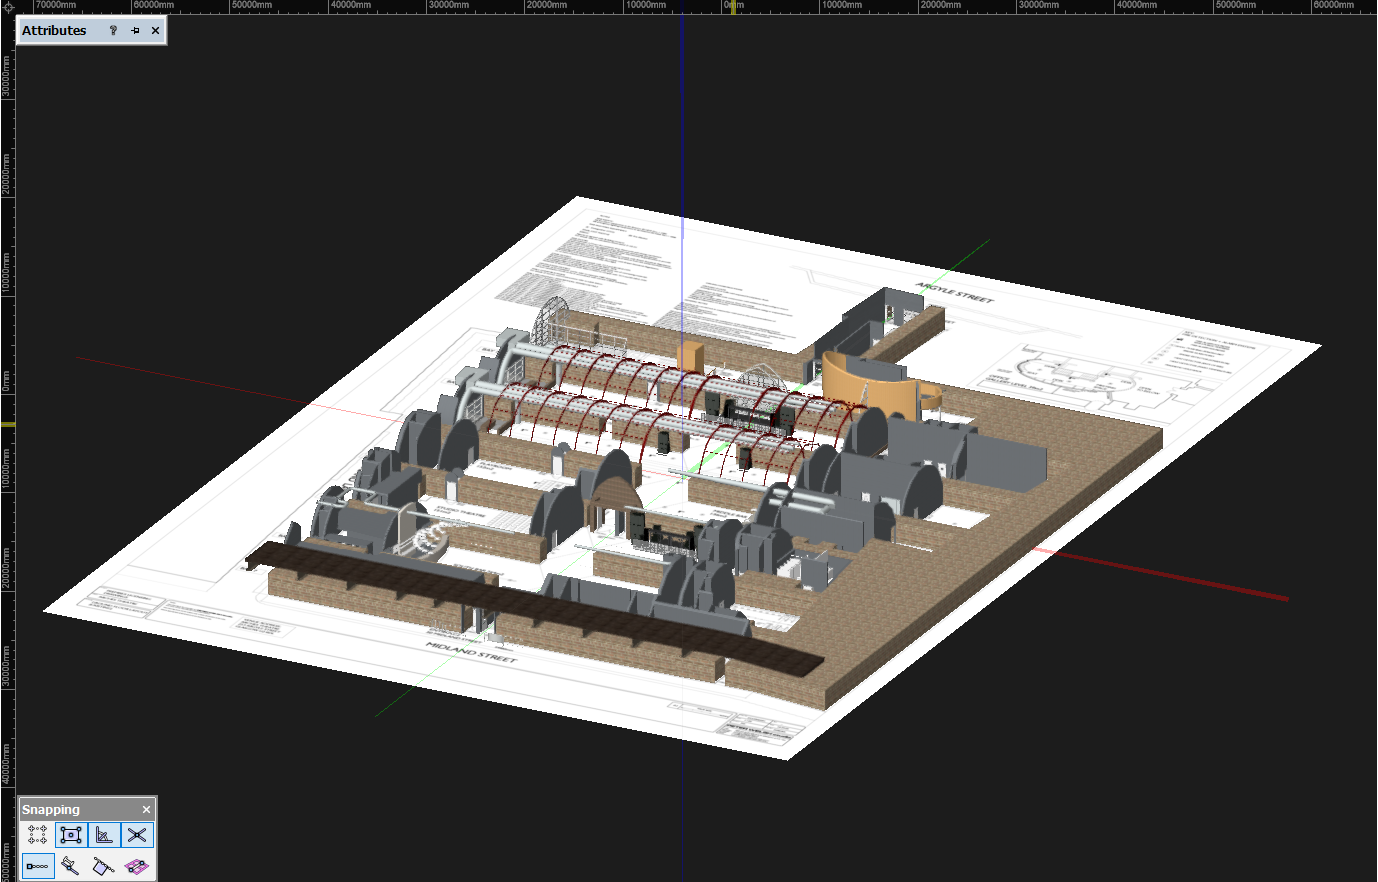 A side view of the virtual club model in Vectorworks, showing the club model on top of the floor plan.